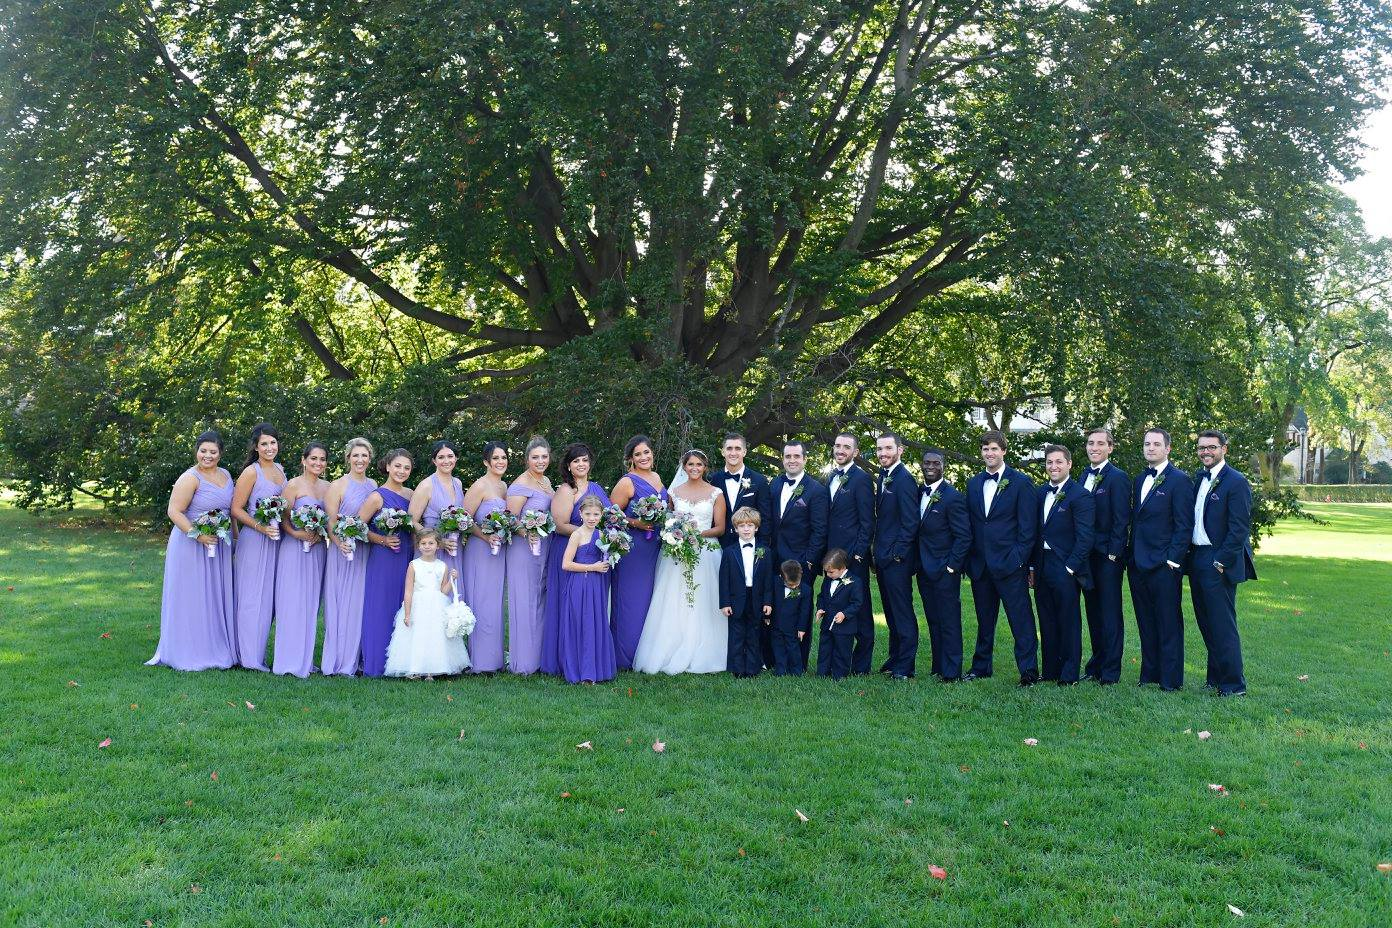 bridesmaids in mismatched purple gowns and groomsmen in black tuxedos